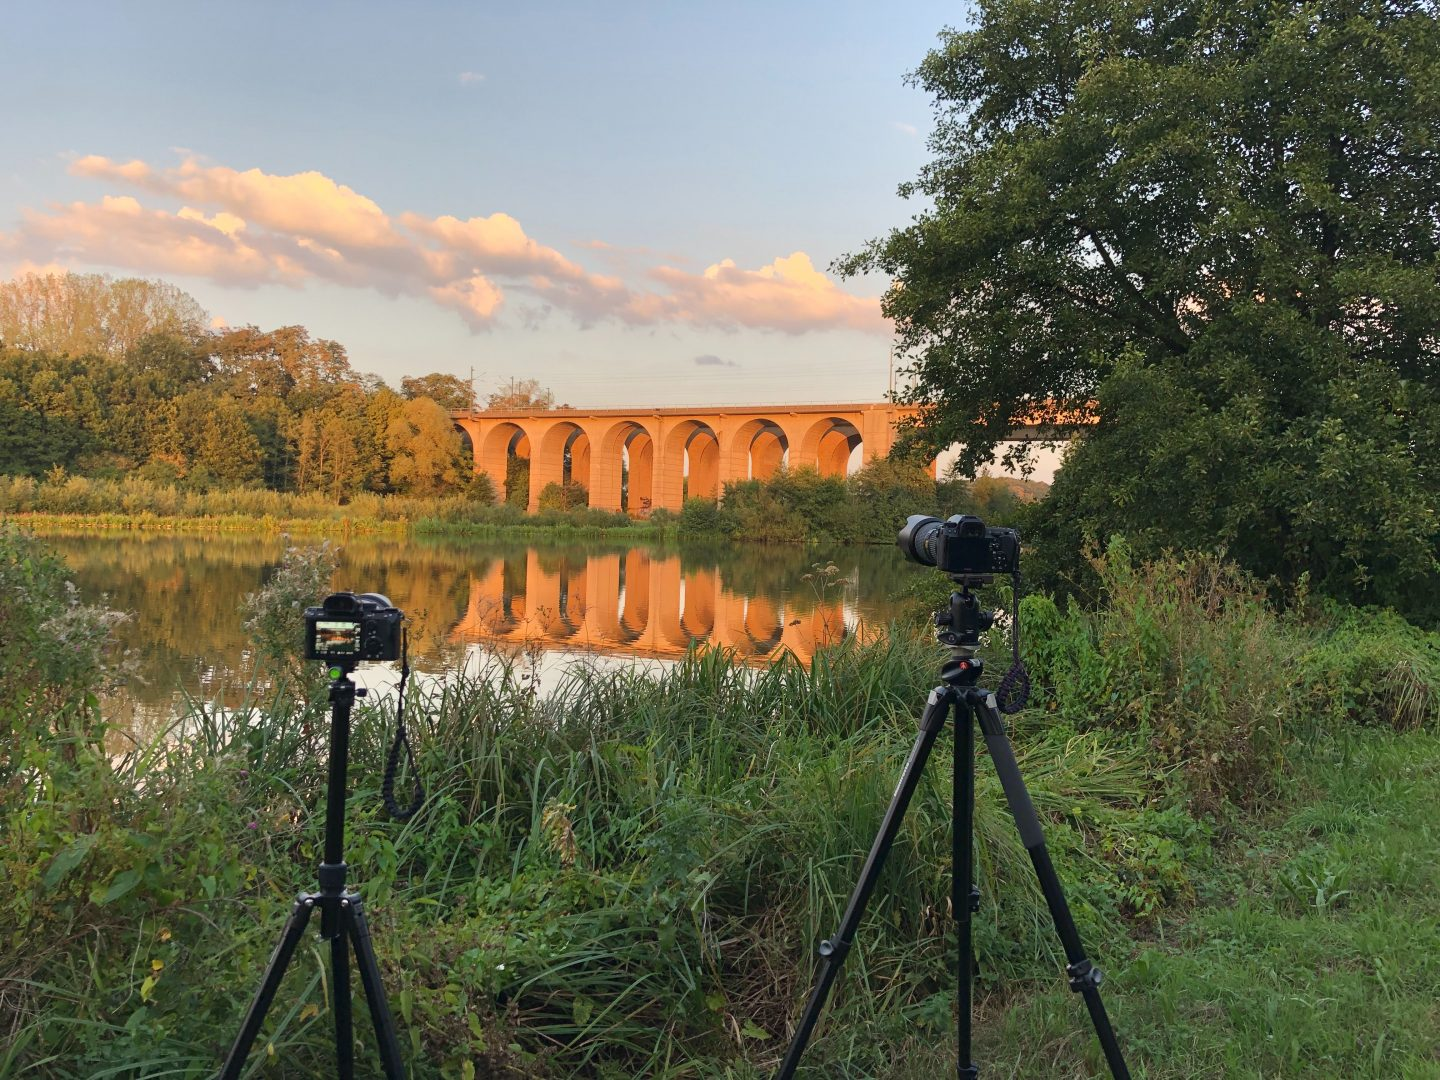 Using a best camera for safari to take a landscape photo